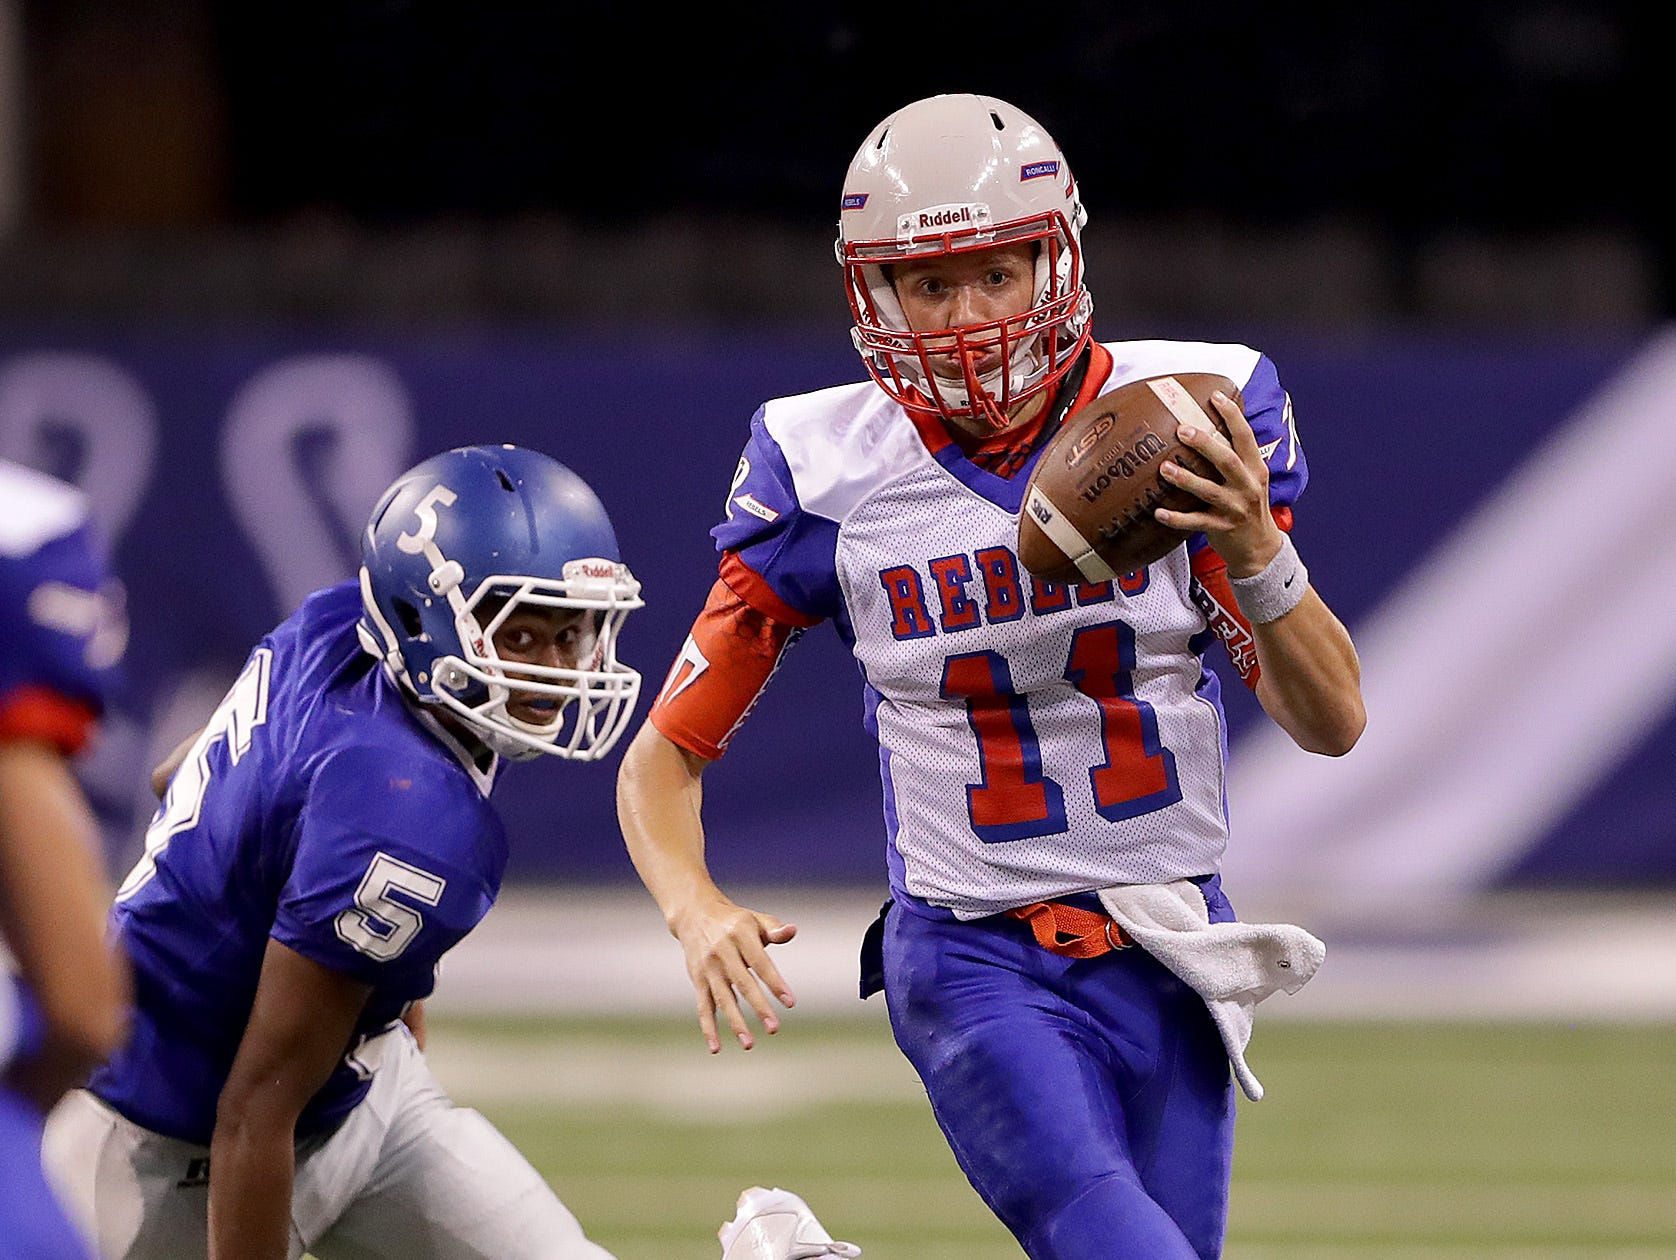 Roncallli's quarterback Derek O'Connor (11) runs by Franklin Central's Kajuan Coe (5) in the second half of their game. The Roncallli Rebels defeated the Franklin Central Flashes 22-14l Friday, August 26, 2015, evening at Lucas Oil Stadium.